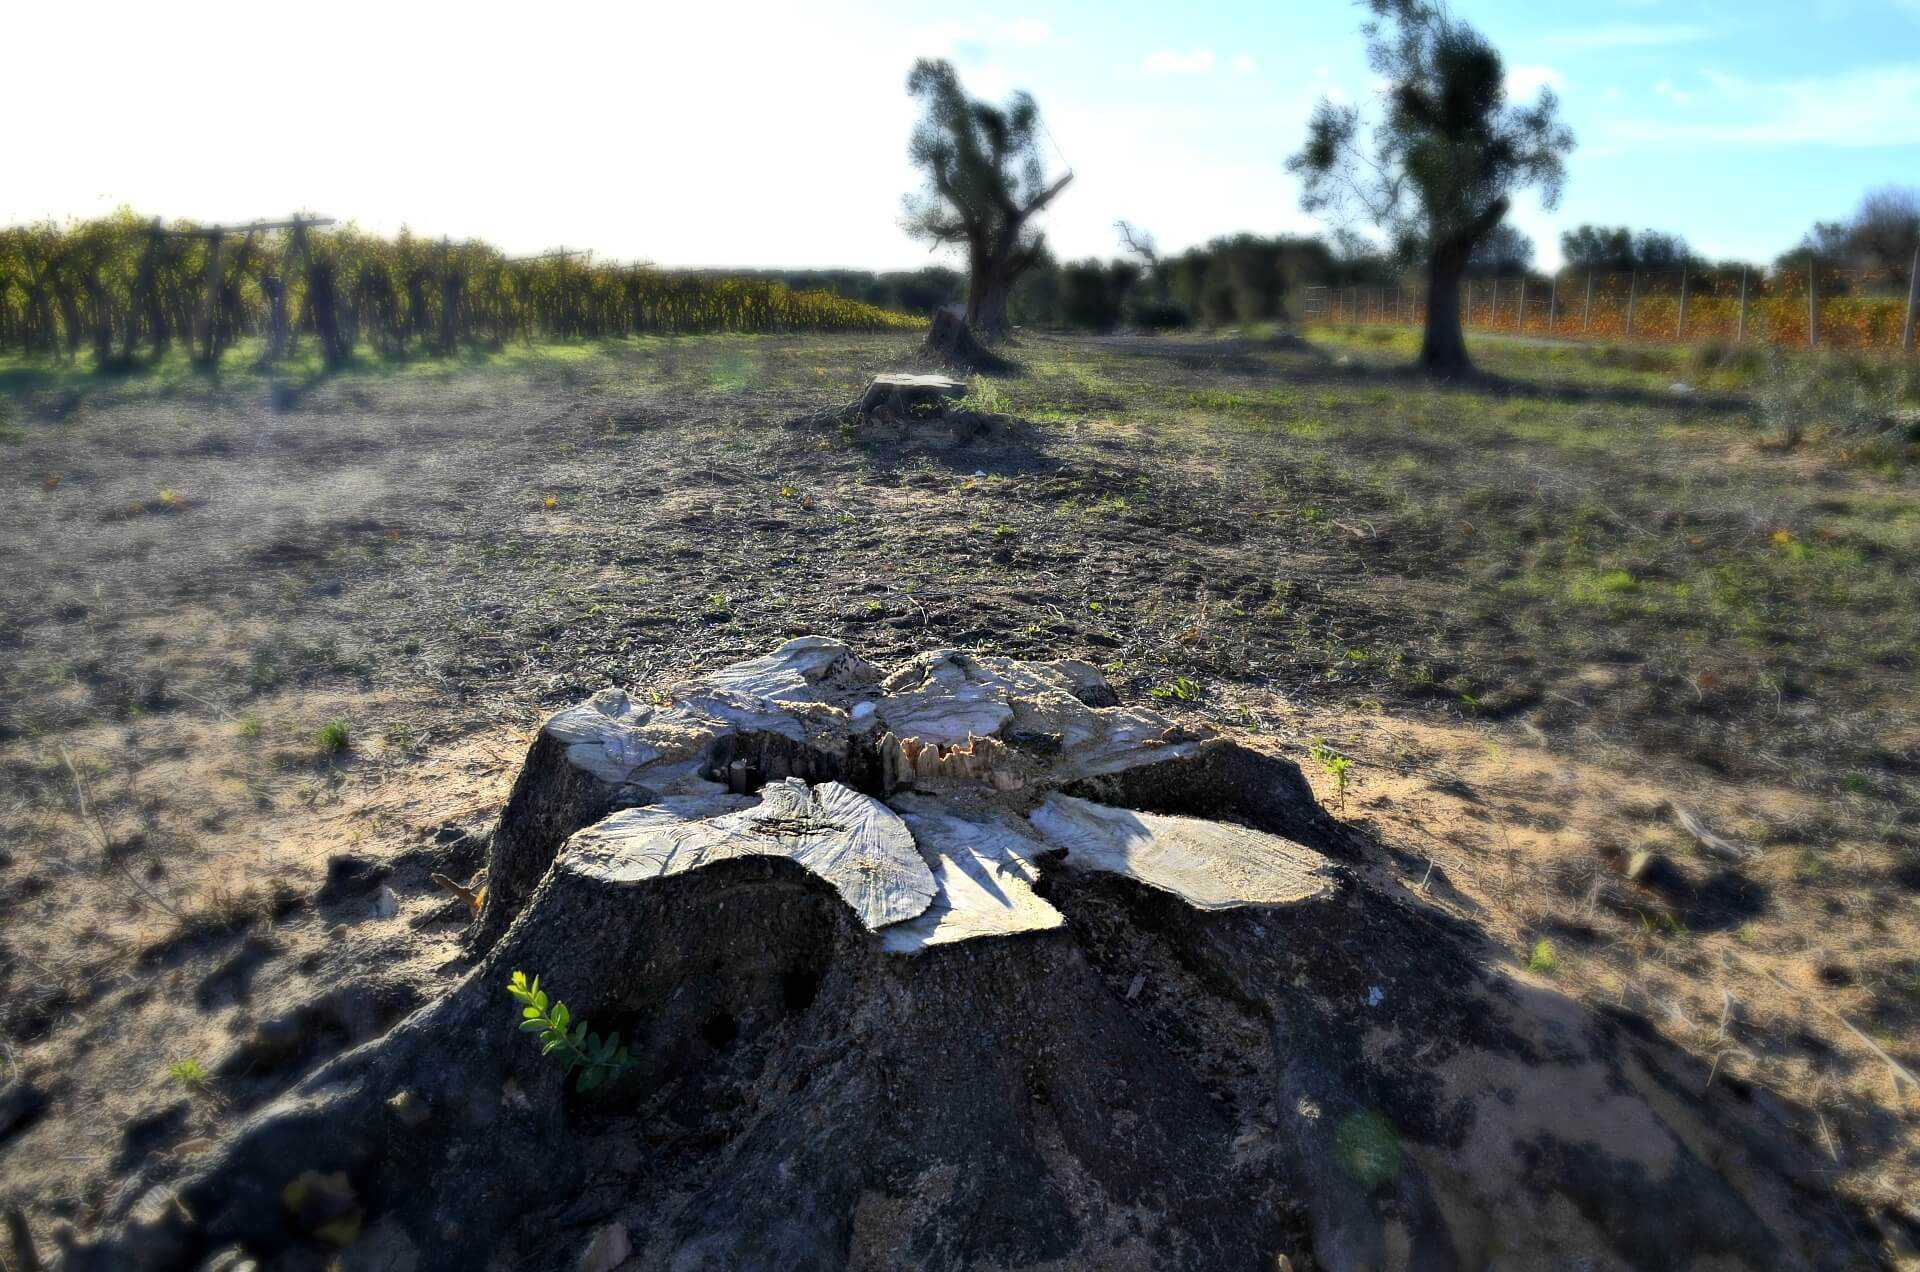 where-the-olive-trees-are-dying-a-frontline-report-on-xylella